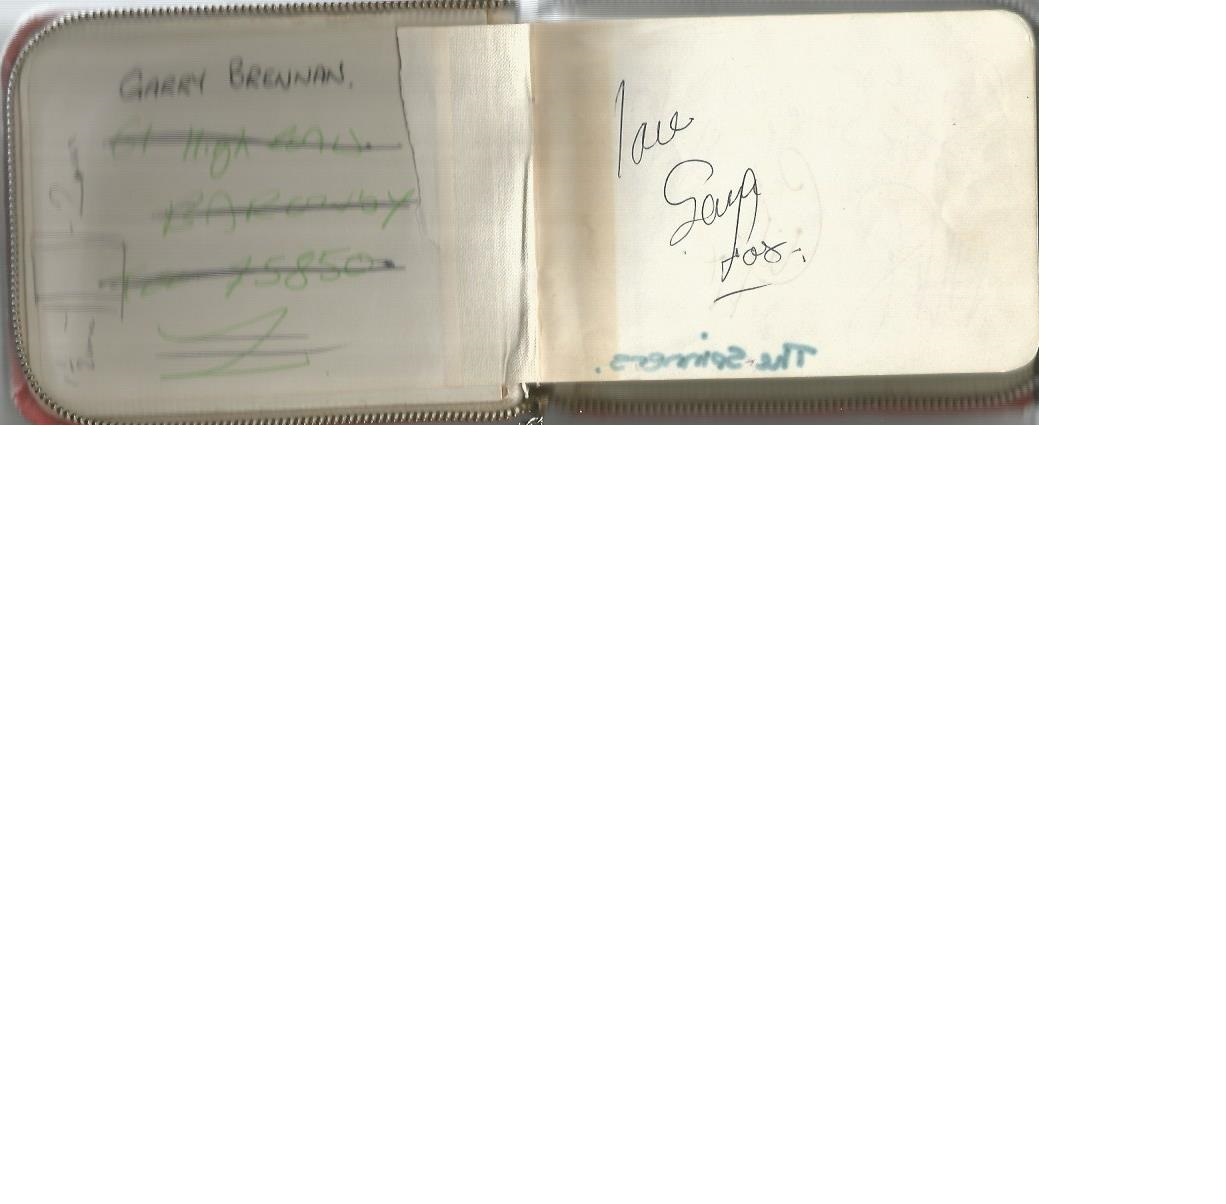 Lot 6 - Small autograph book containing 10+ signatures. Amongst them are The Spinners, Lorraine Chase, Jim